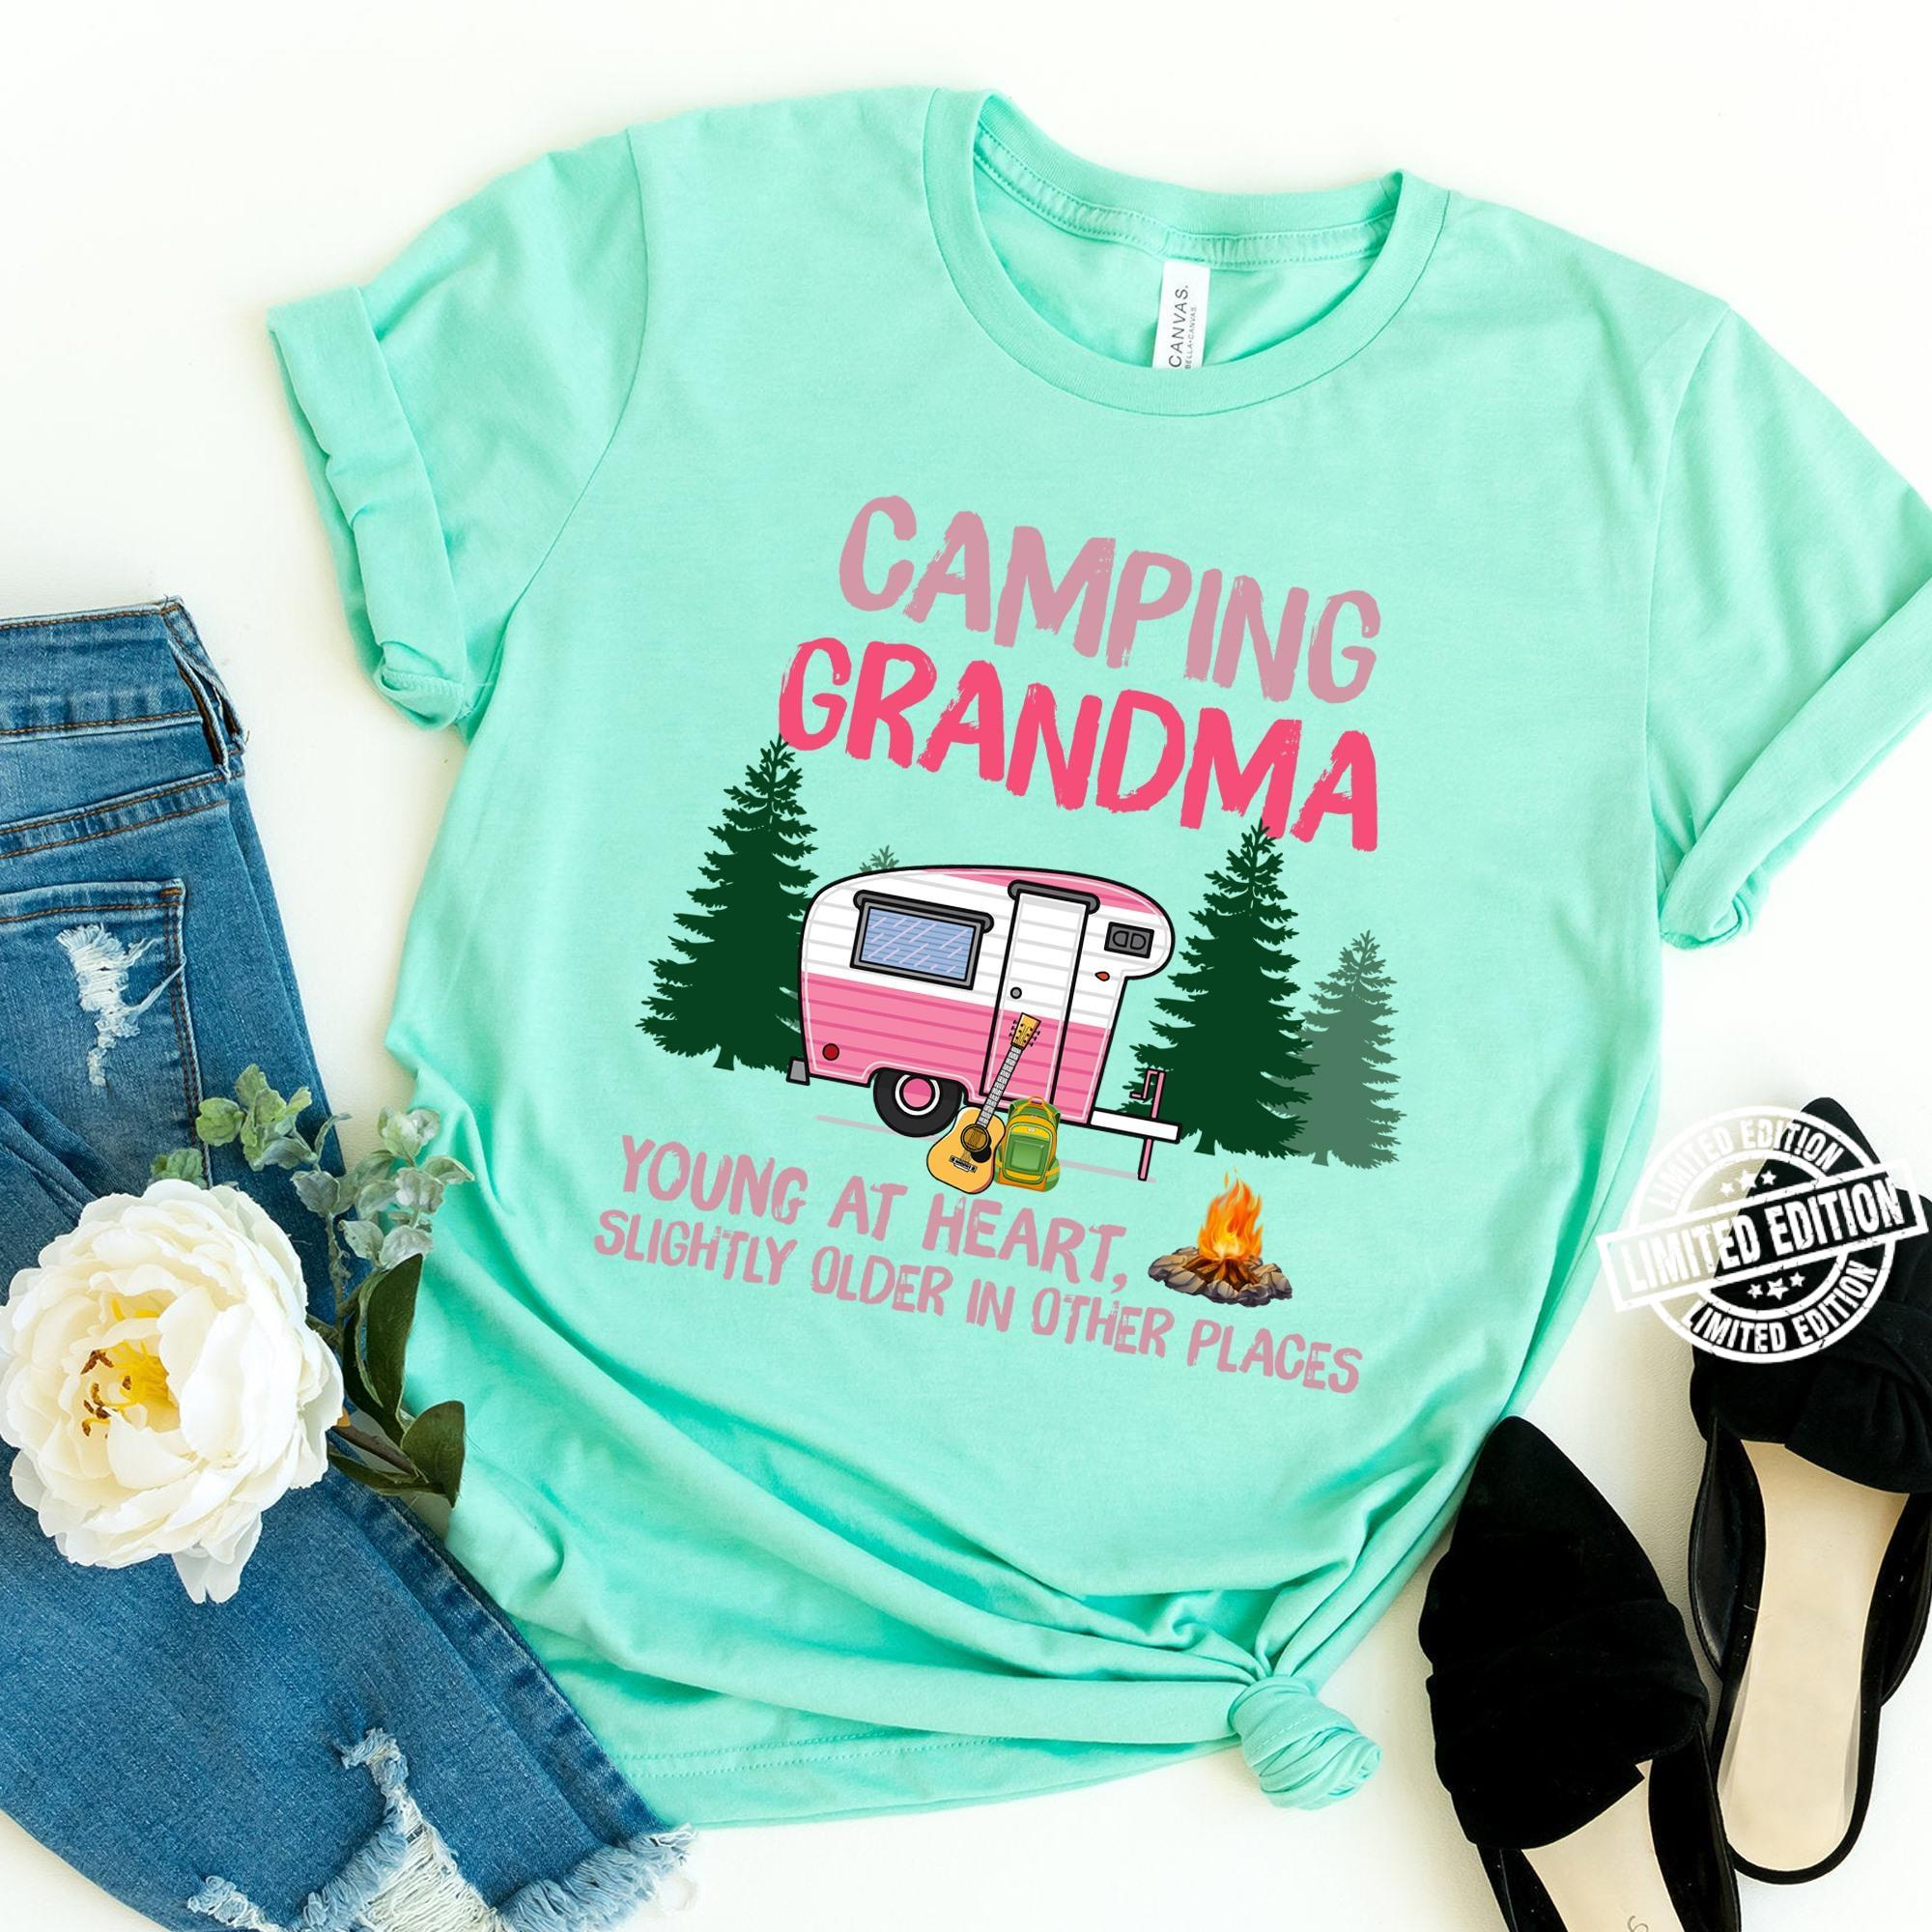 Camping grandma young at heart slightly older in other shirt